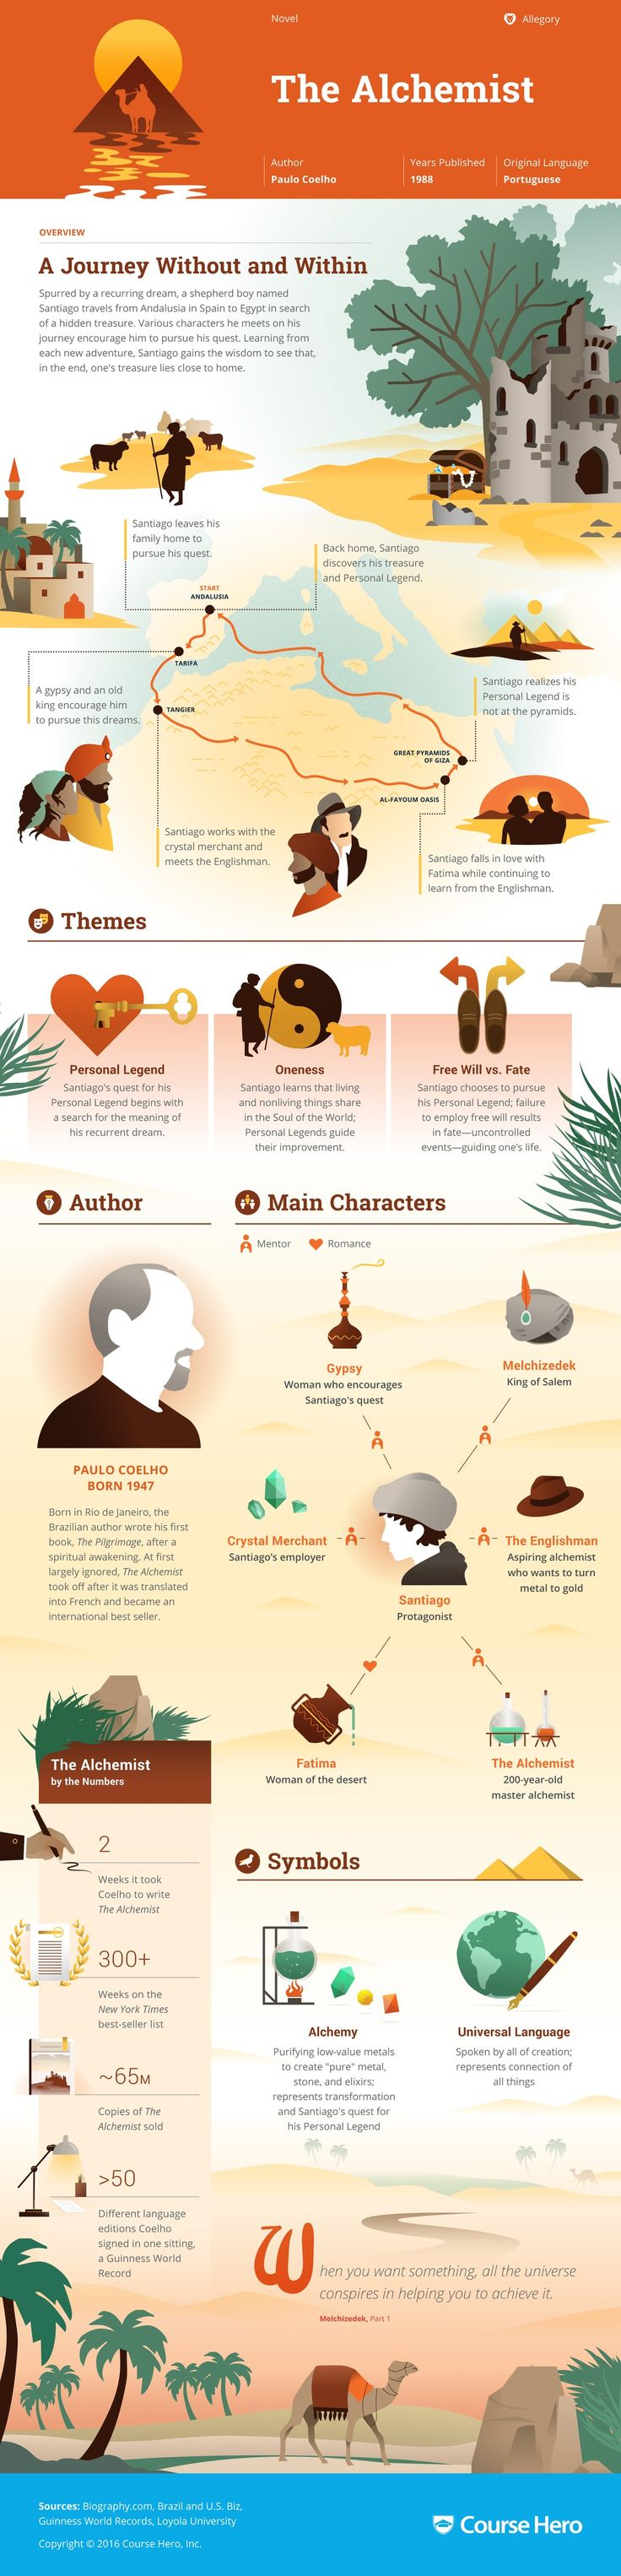 best ideas about the alchemist paulo coelho the study guide for paulo coelho s the alchemist including part summary character analysis and more learn all about the alchemist ask questions